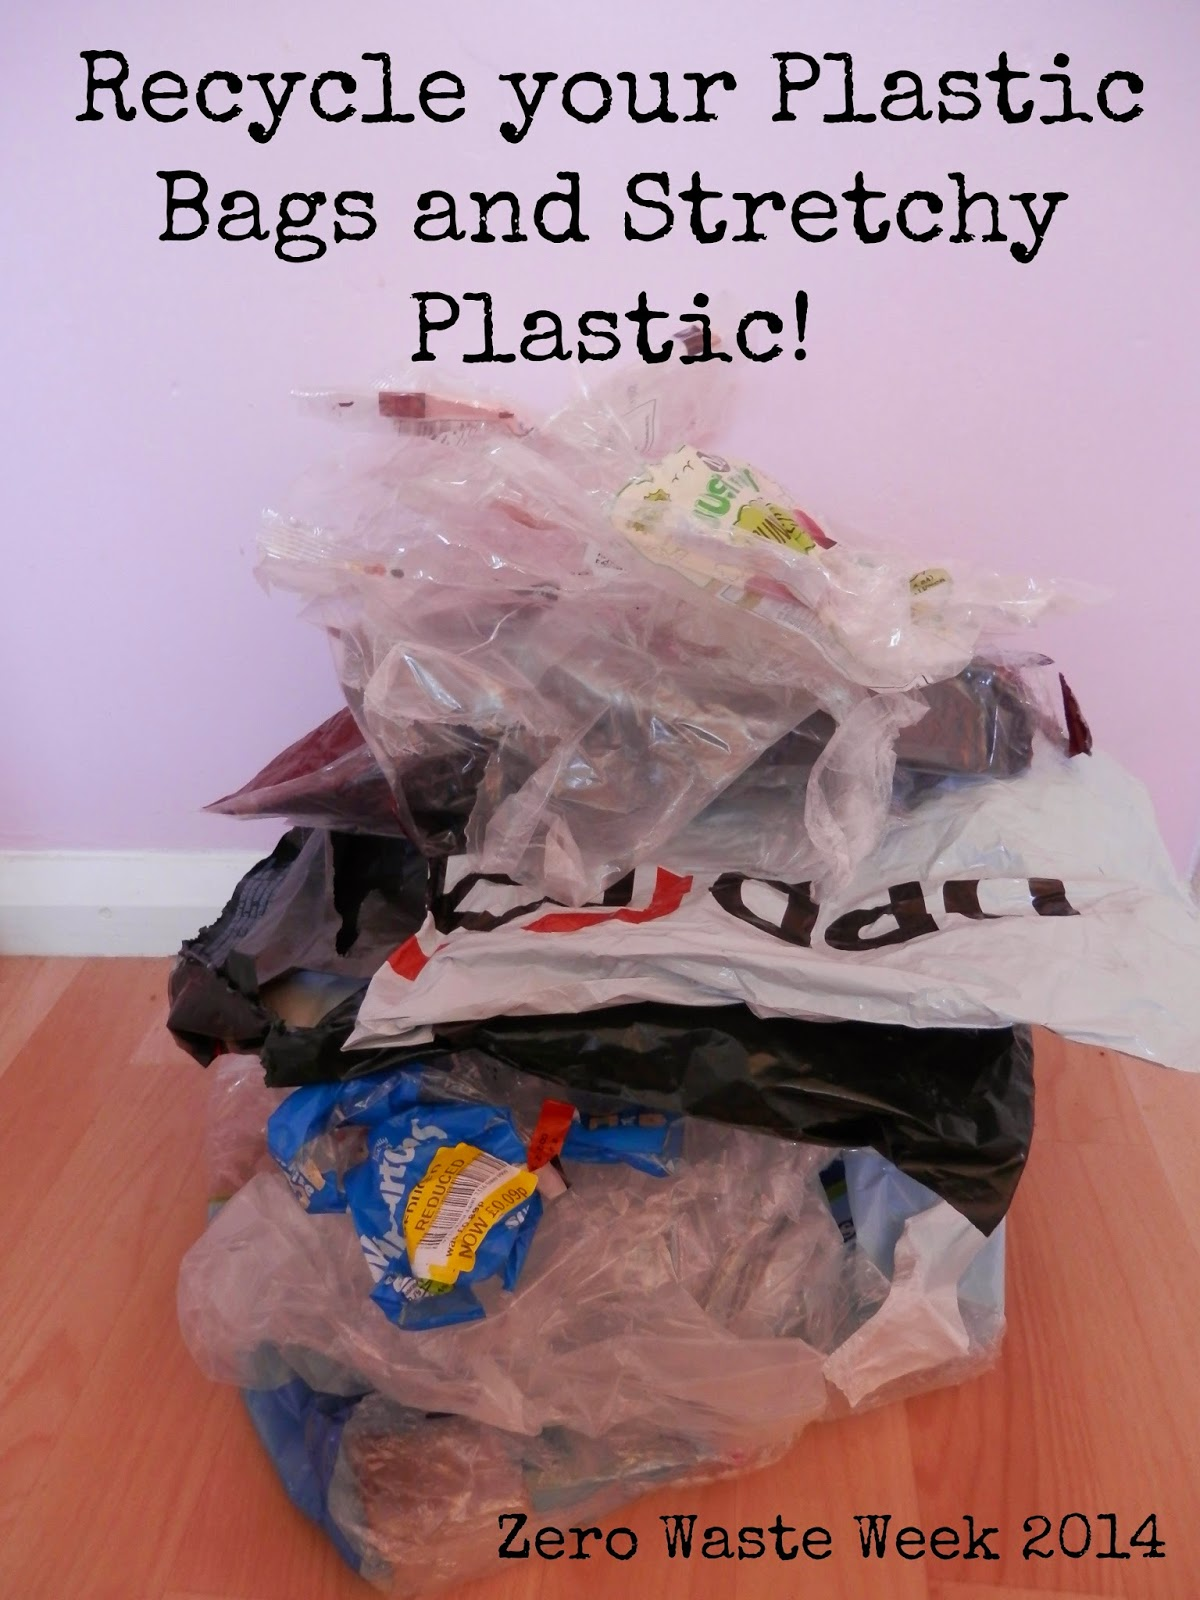 How to recycle plastic bags plastic packaging and stretchy plastic Zero Waste Week 2014 secondhandsusie.blogspot.com